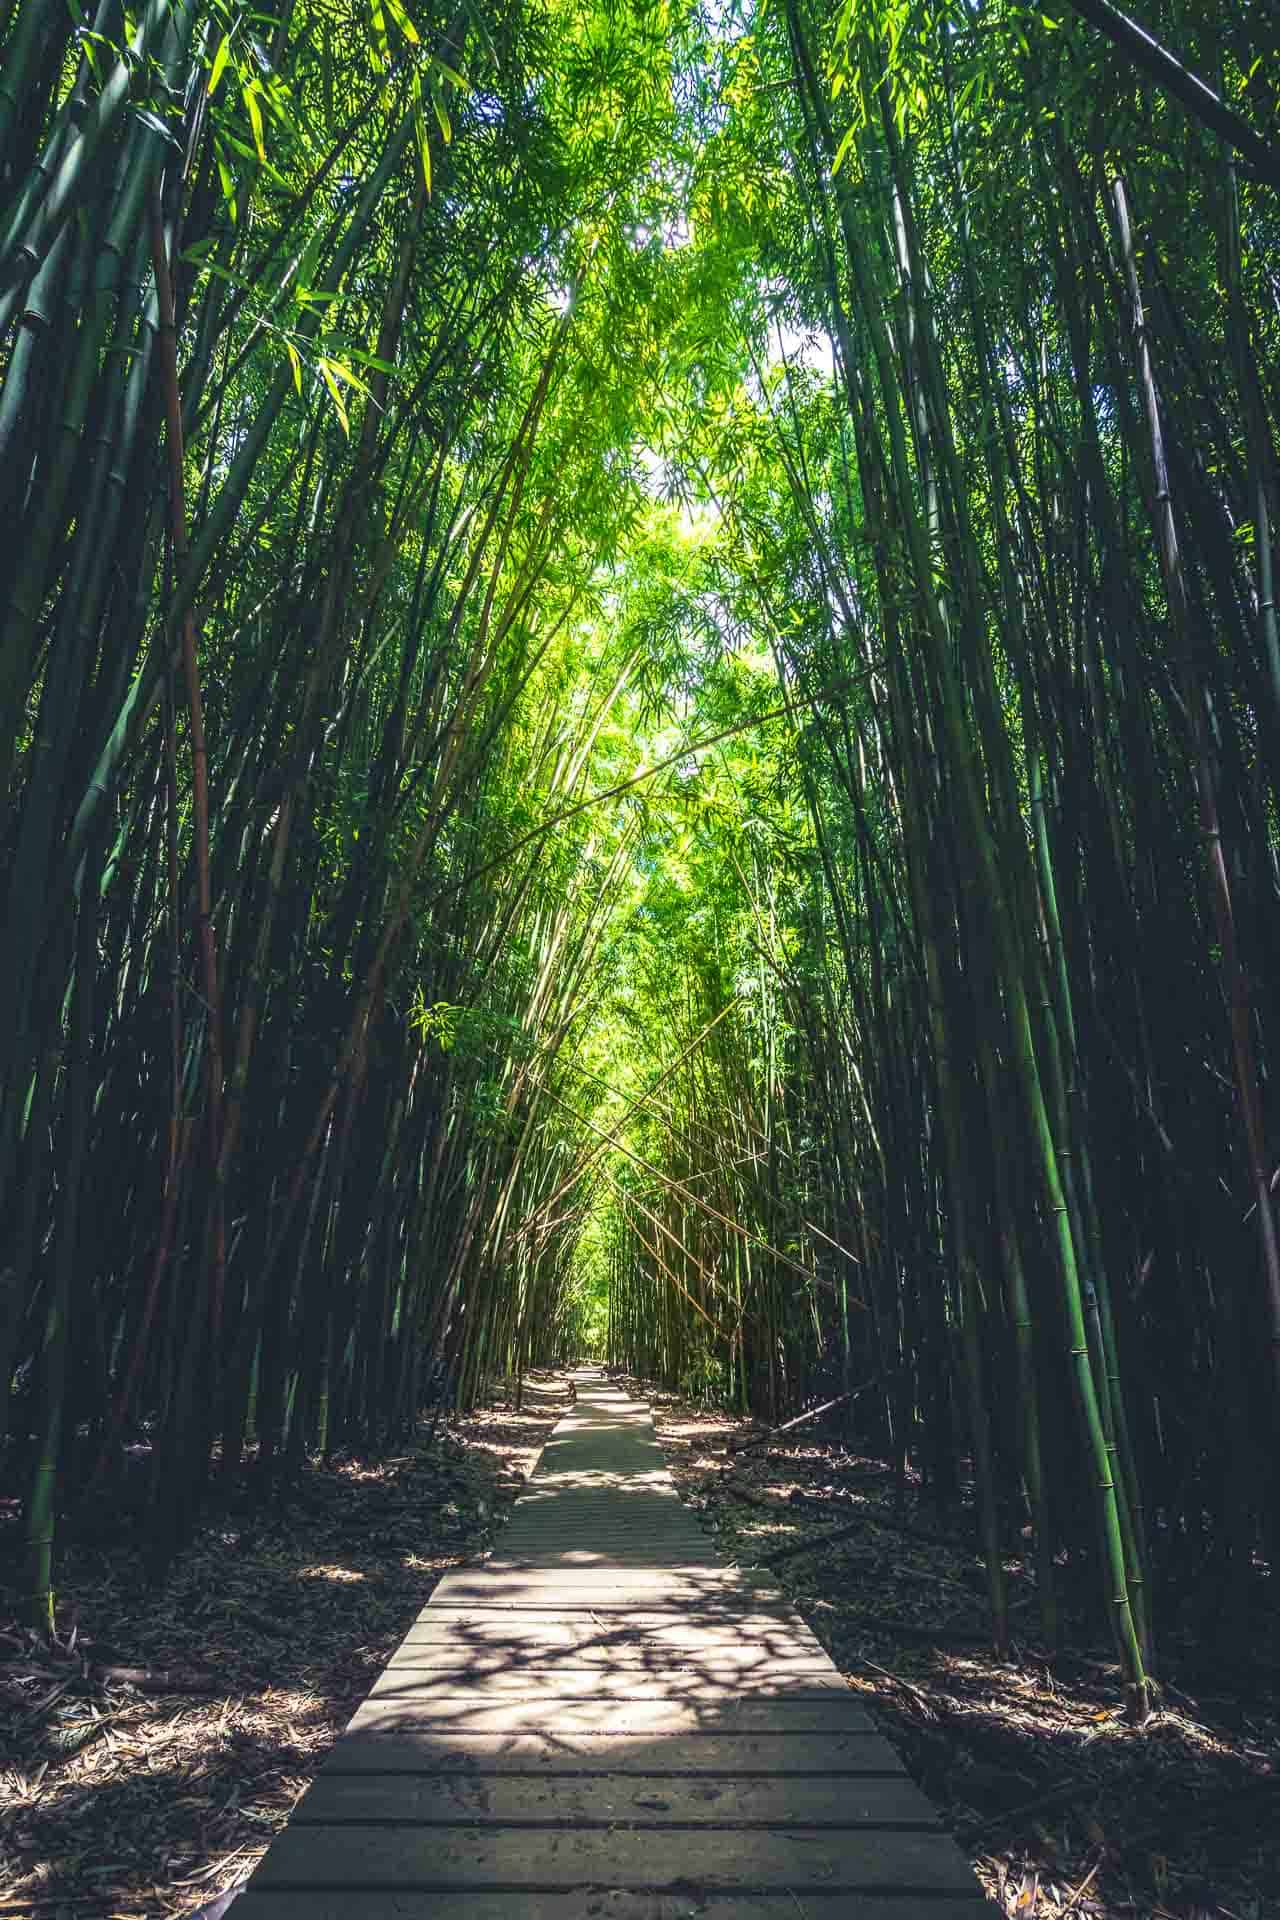 Hike the Bamboo forest in Maui